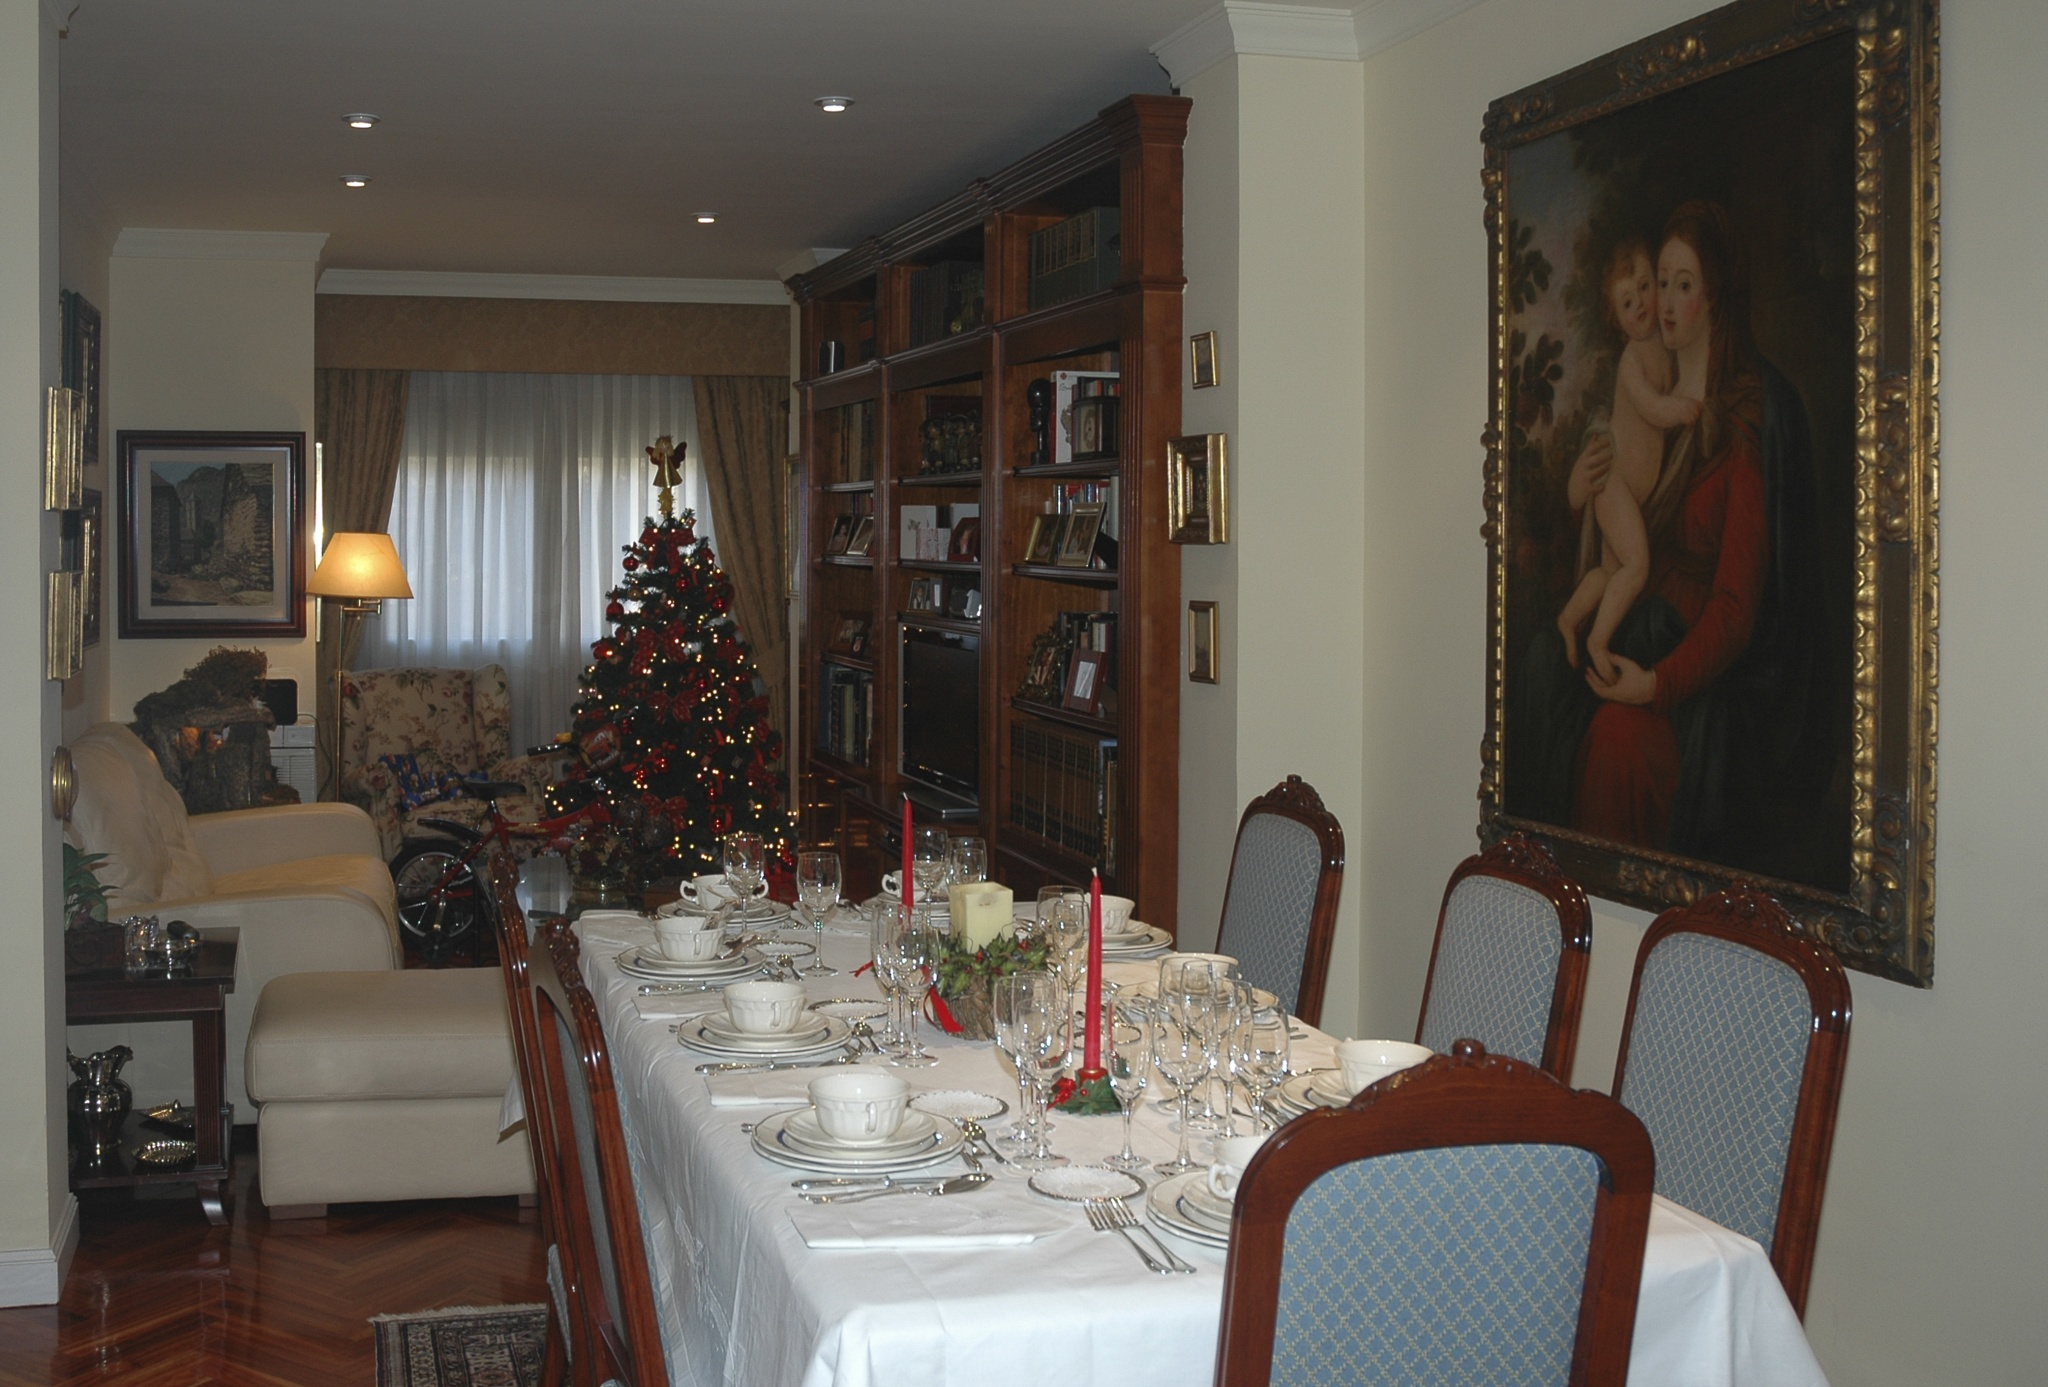 Ready for Christmas lunch by Jose Manuel Navarro